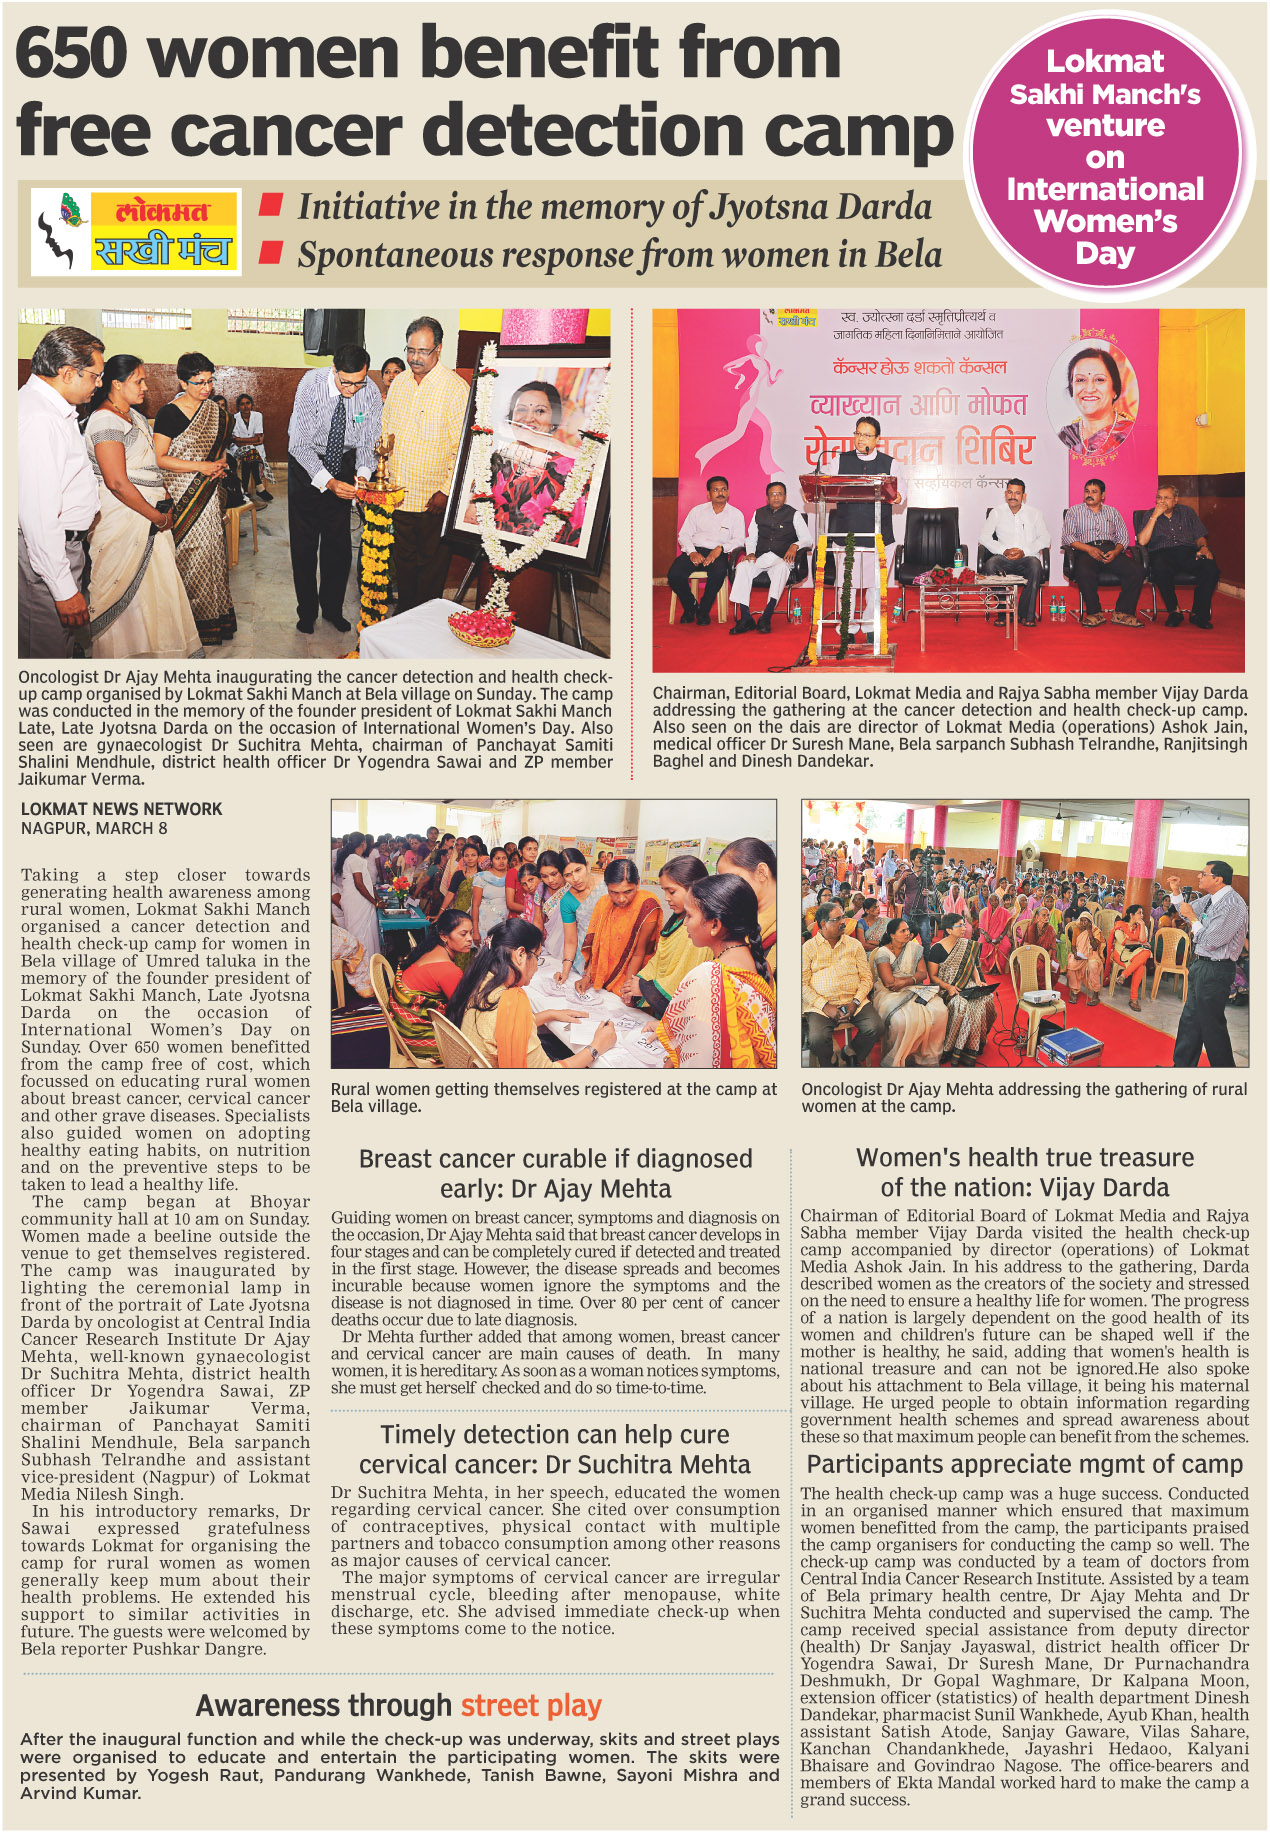 650 women benefit from free cancer detection camp